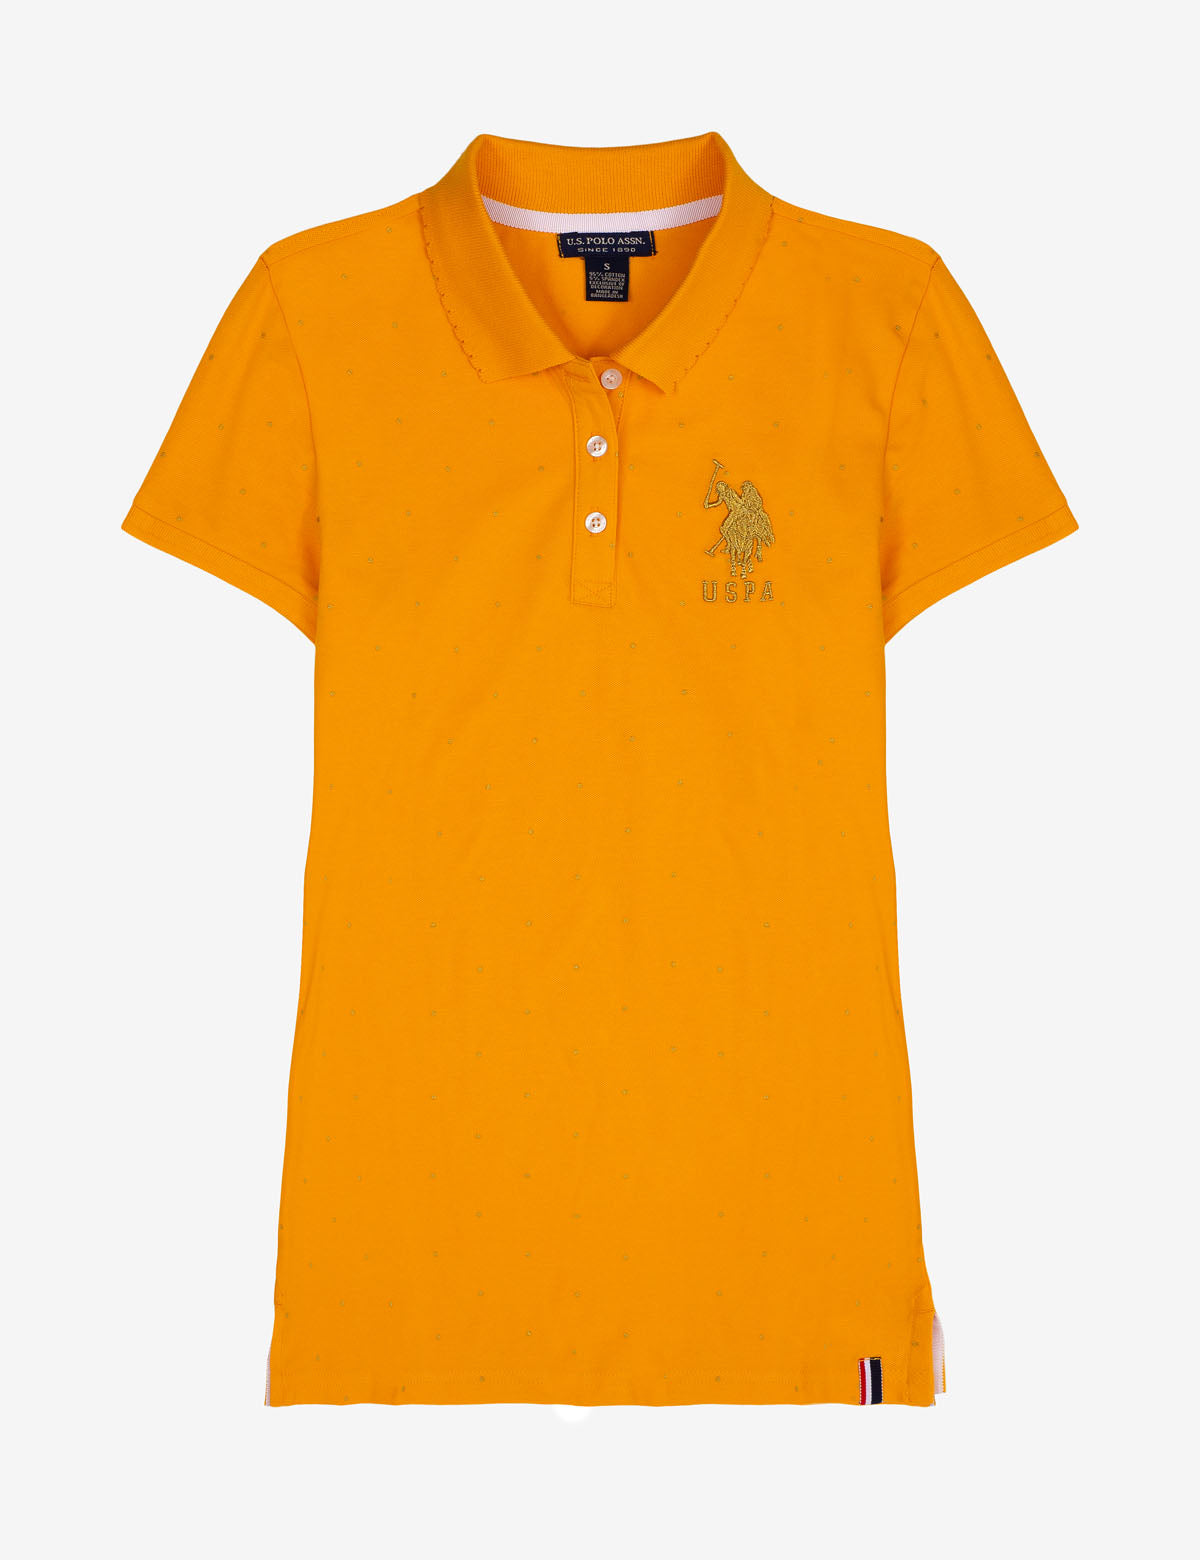 FOIL DOT SCALLOP COLLAR POLO SHIRT - U.S. Polo Assn.